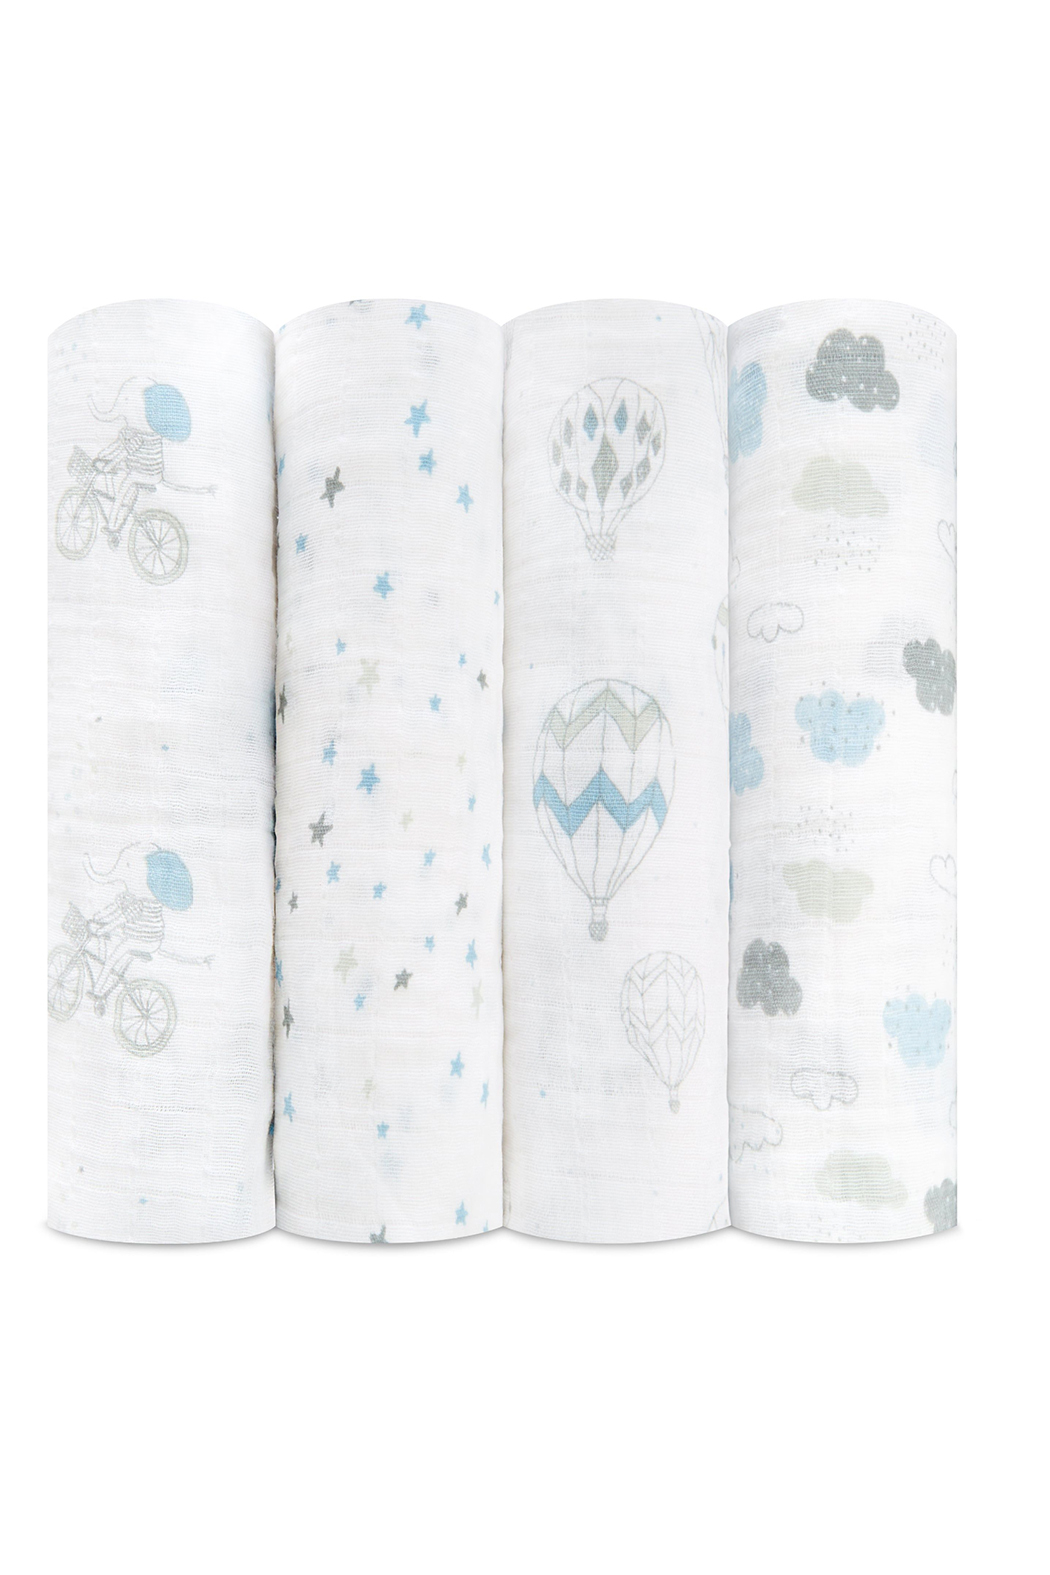 Aden + Anais Night Sky Reverie 4 Pack Classic Swaddles - Front Full Image